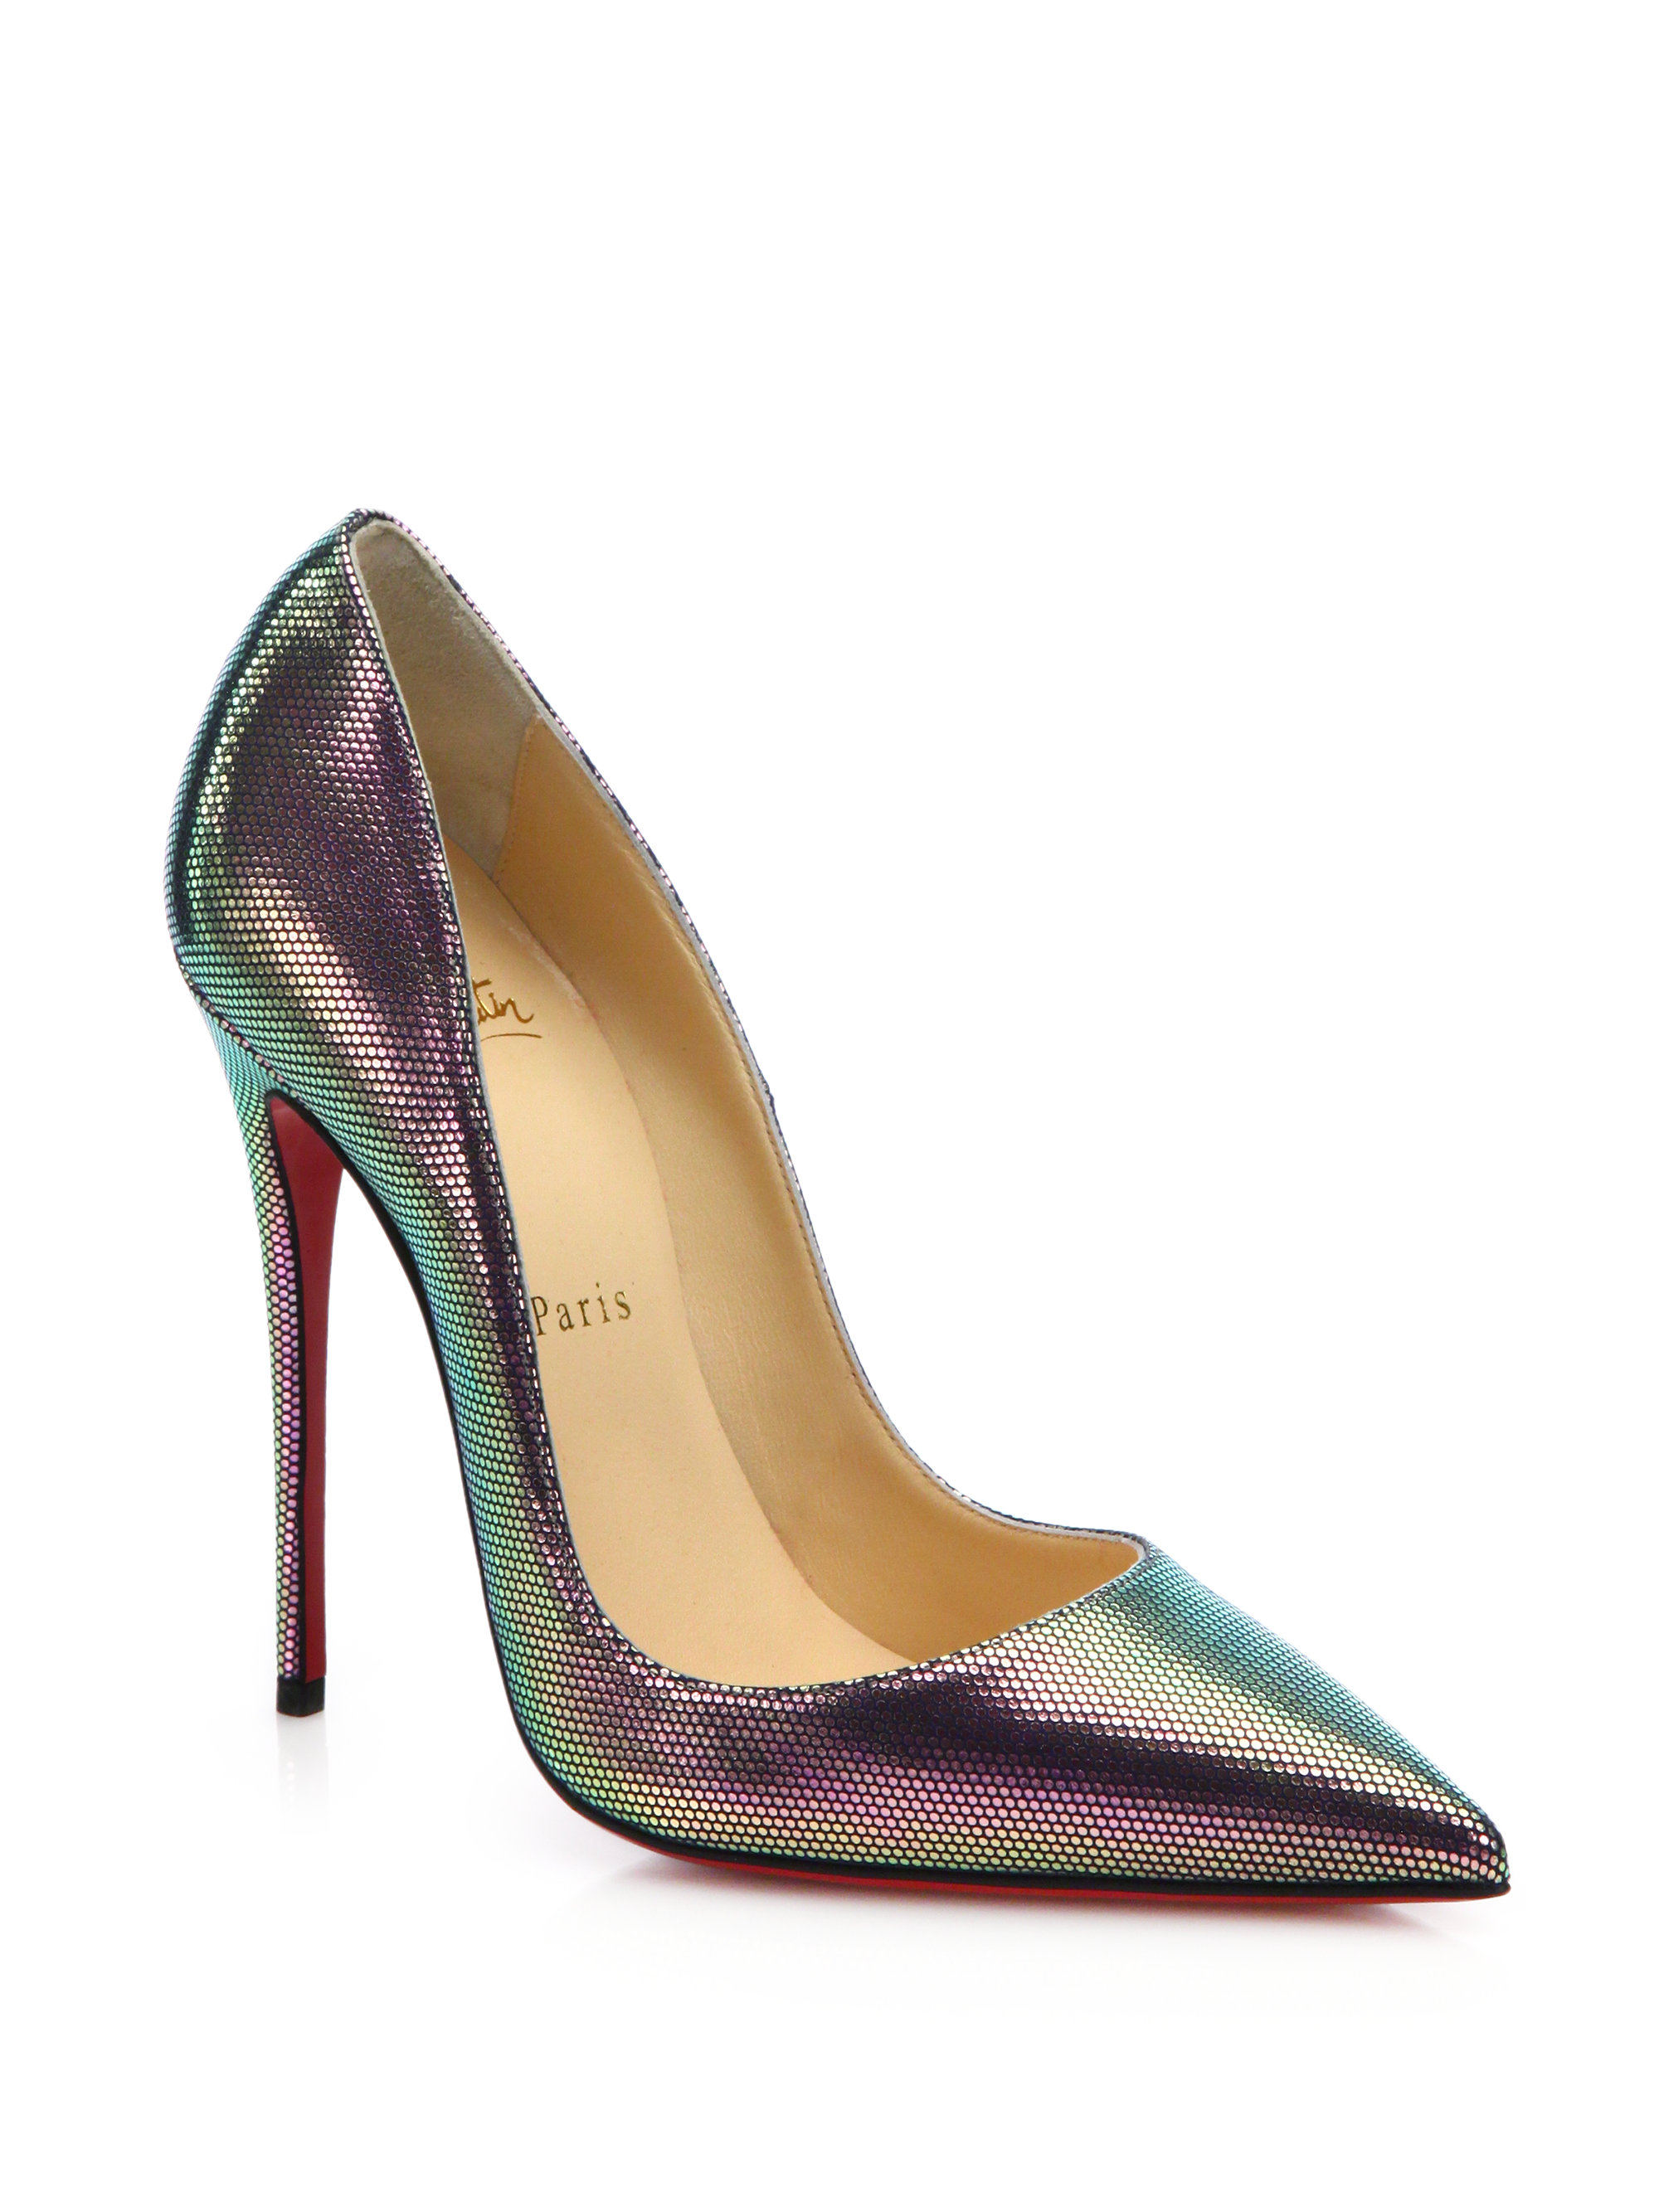 4f522d83c90 Lyst - Christian Louboutin So Kate Scarabe Leather   Mesh Pumps in ...